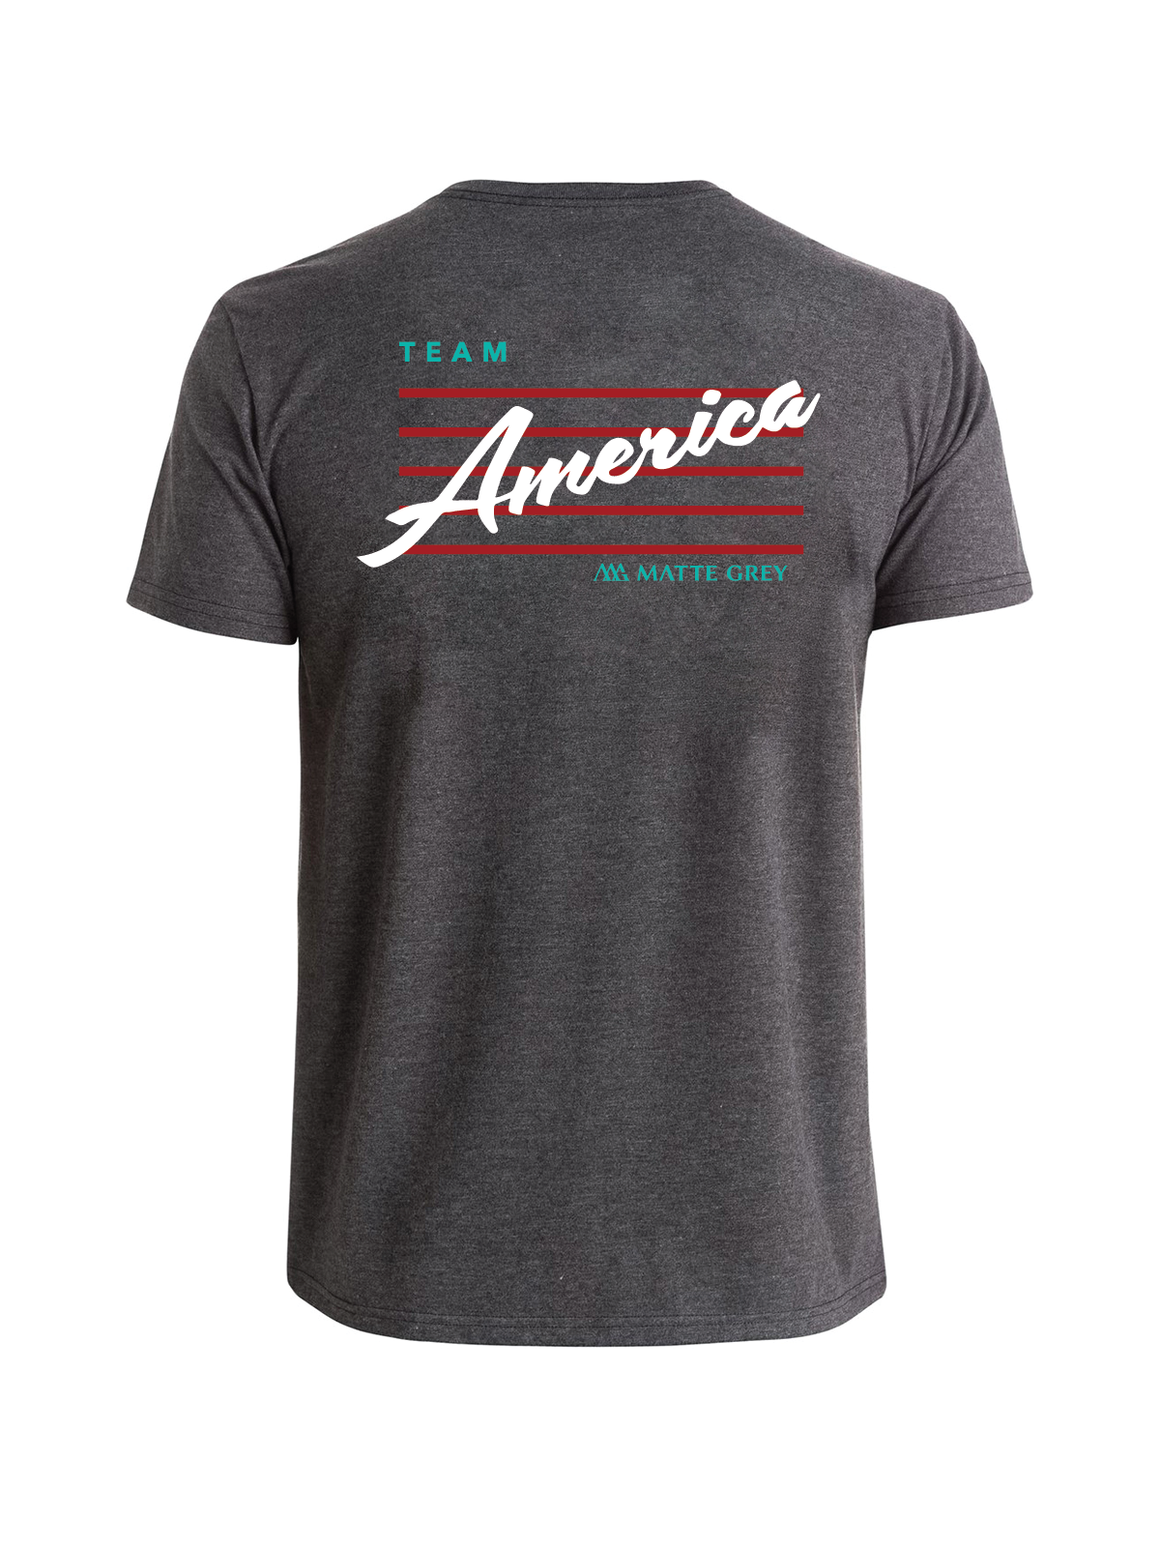 Team American Tee Shirt - Charcoal Heather (White / Red / Kauai)